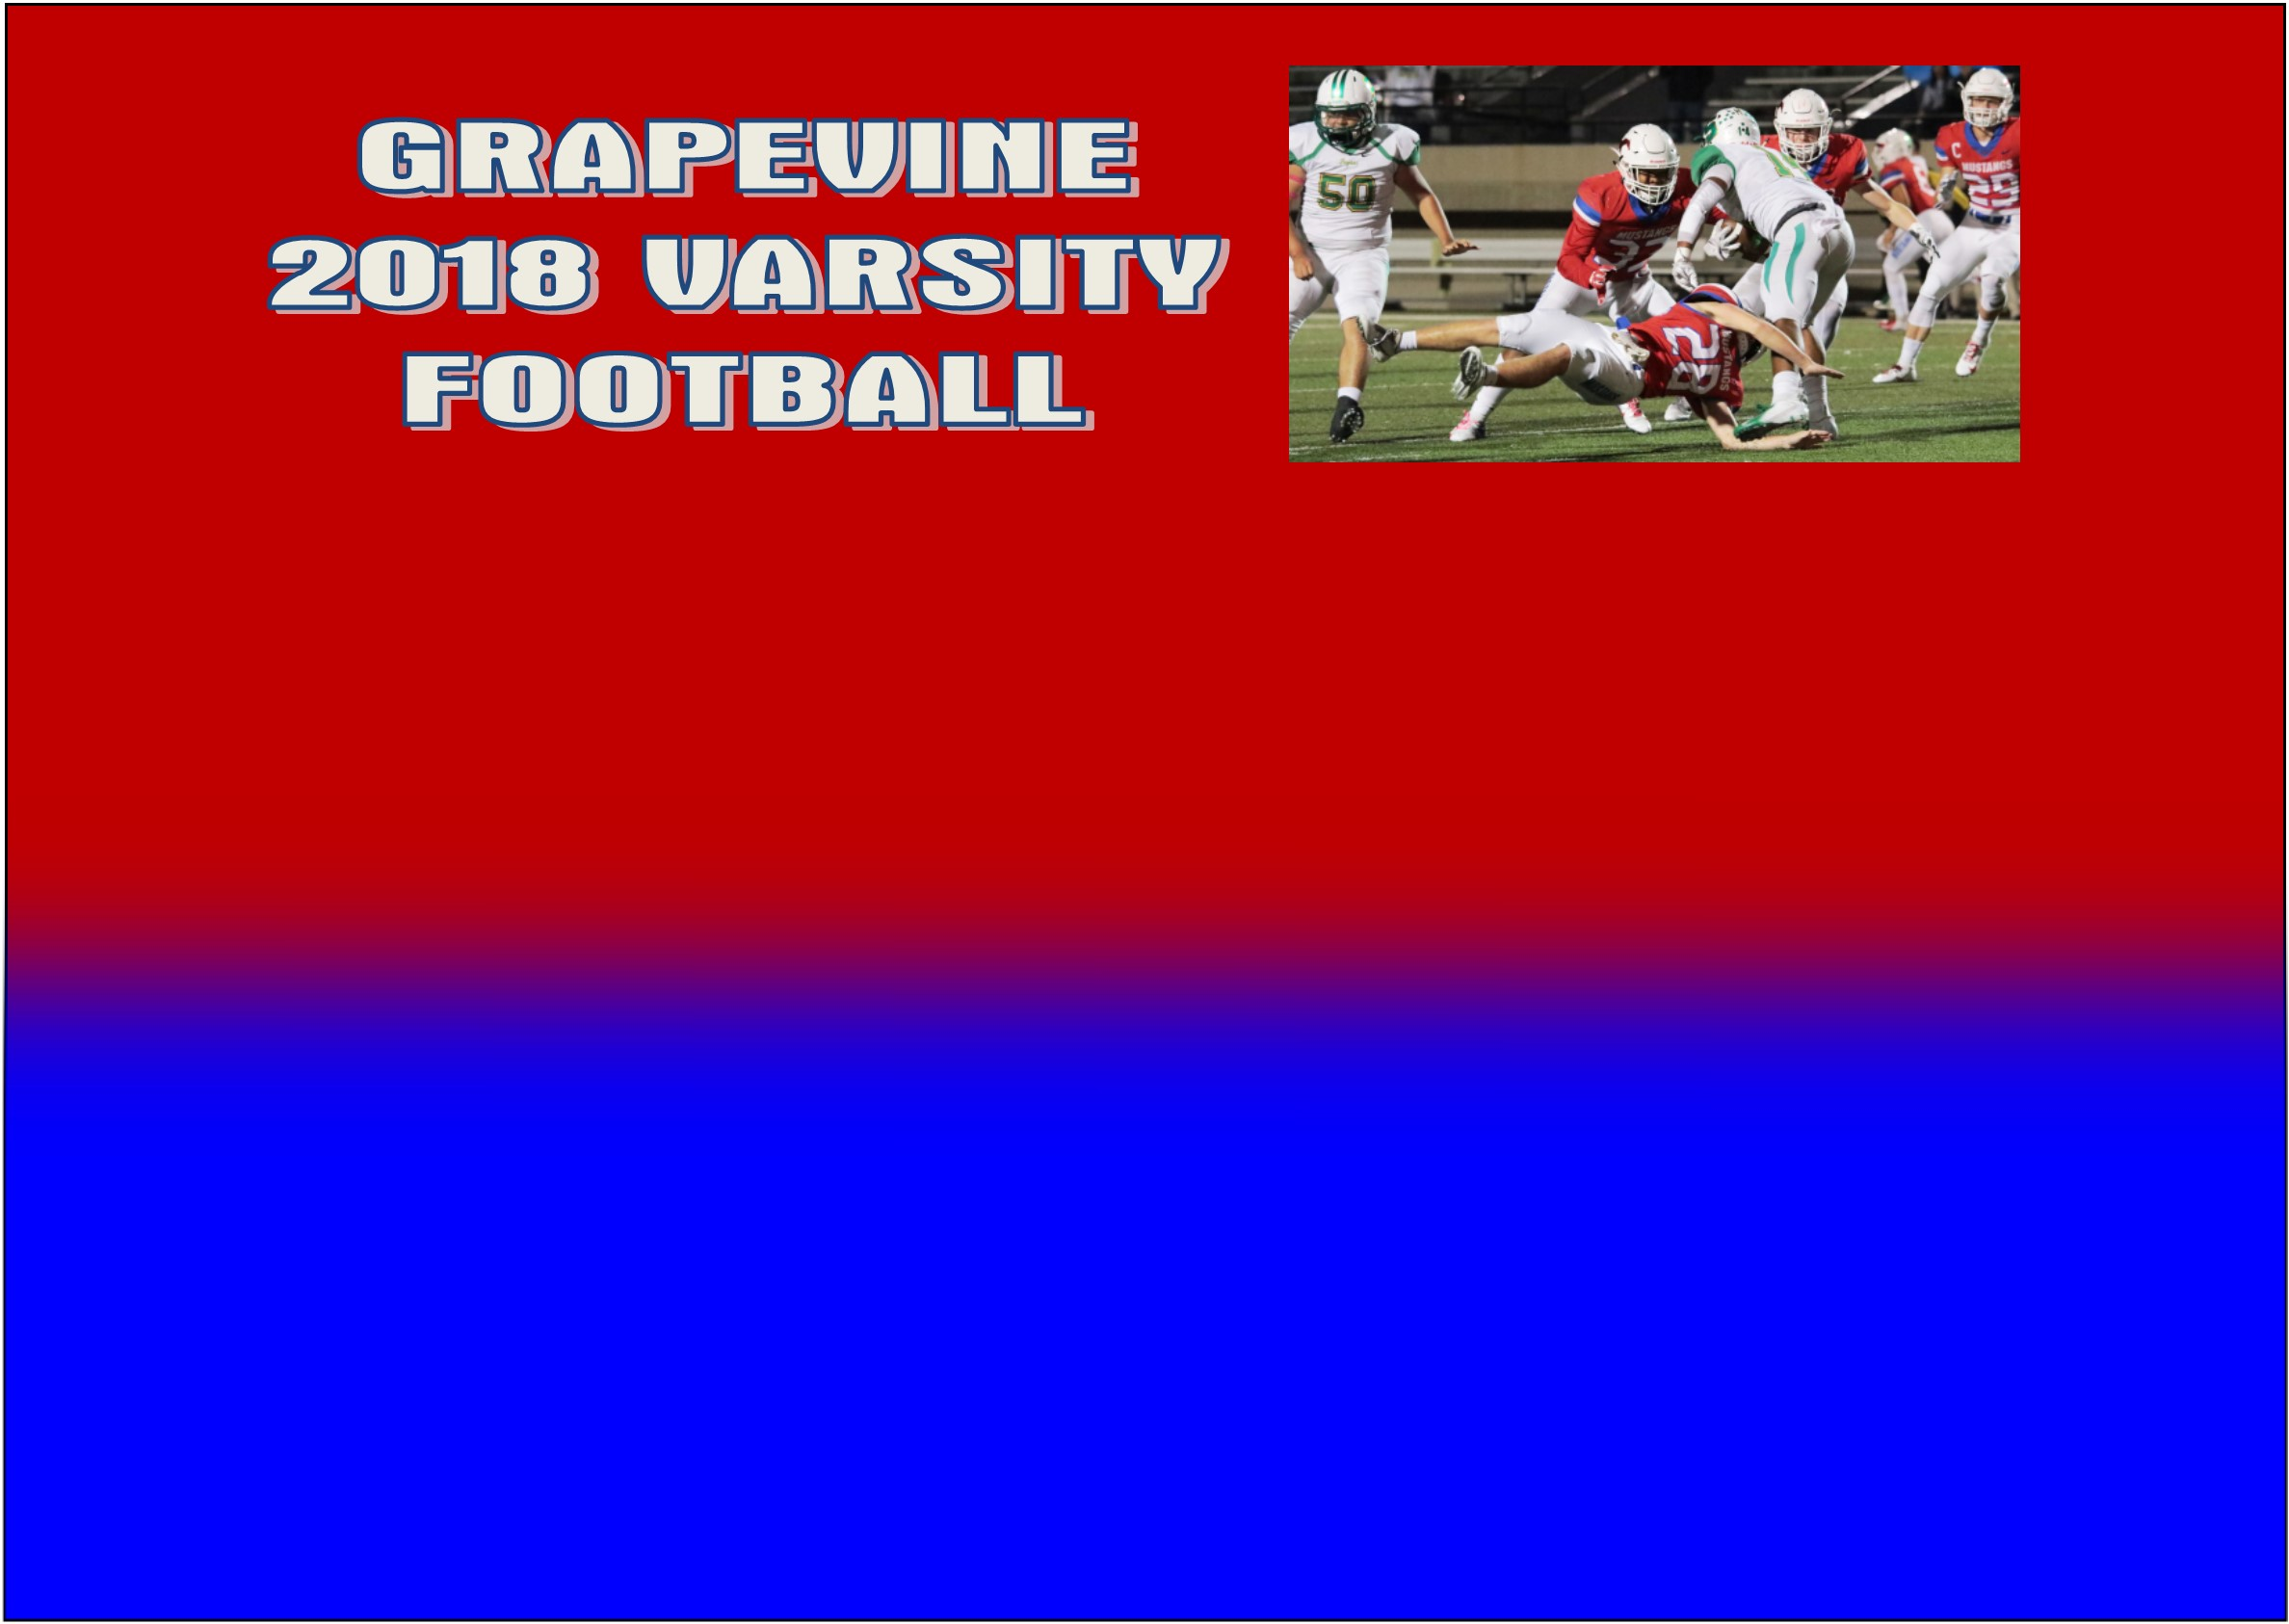 Grapevine Devastates Carrollton Newman Smith in Homecoming Game 56-7